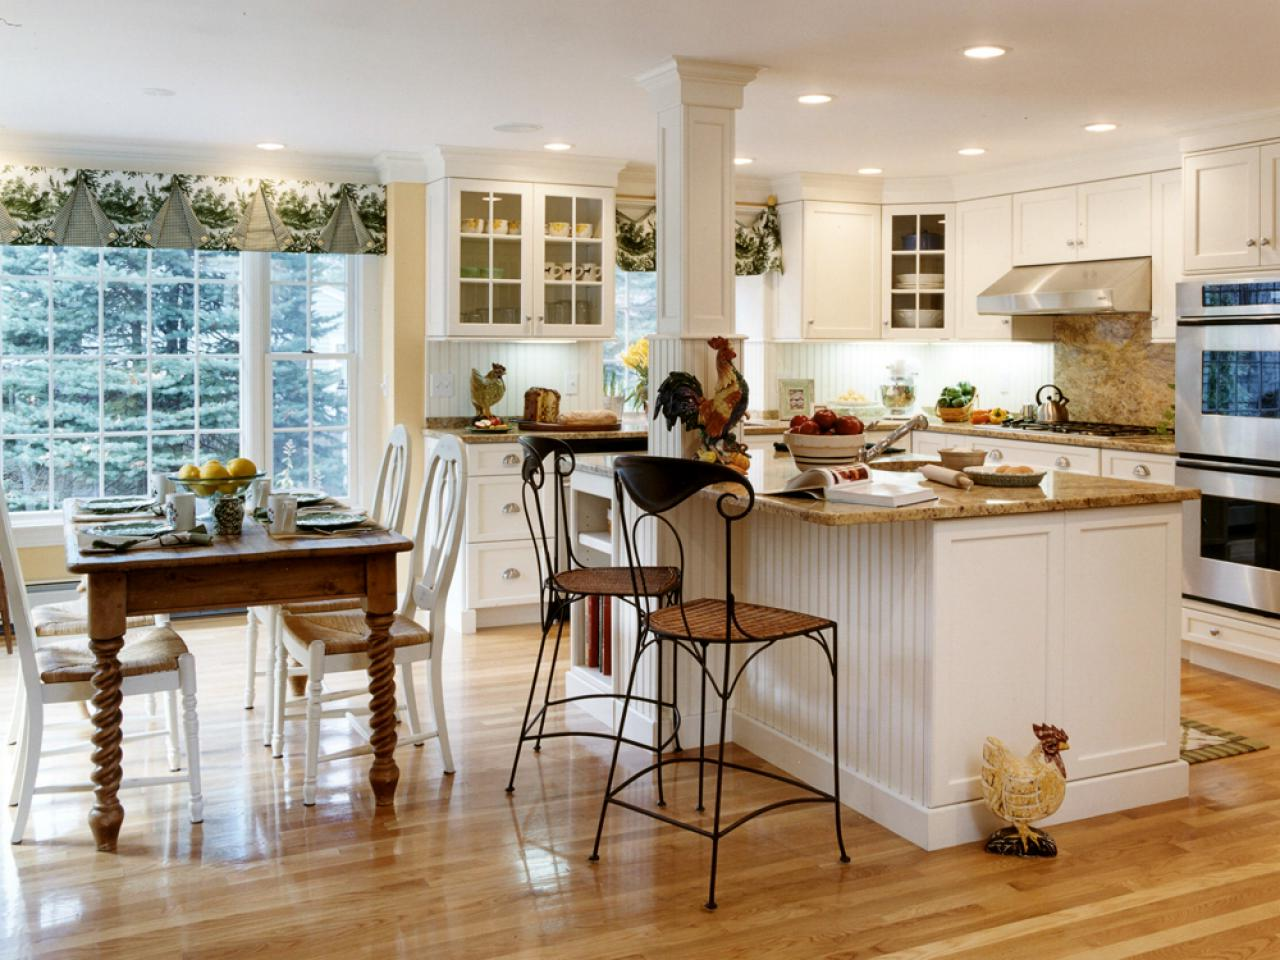 Country Style Kitchen Design kitchen design images - kitchen in country style with wooden